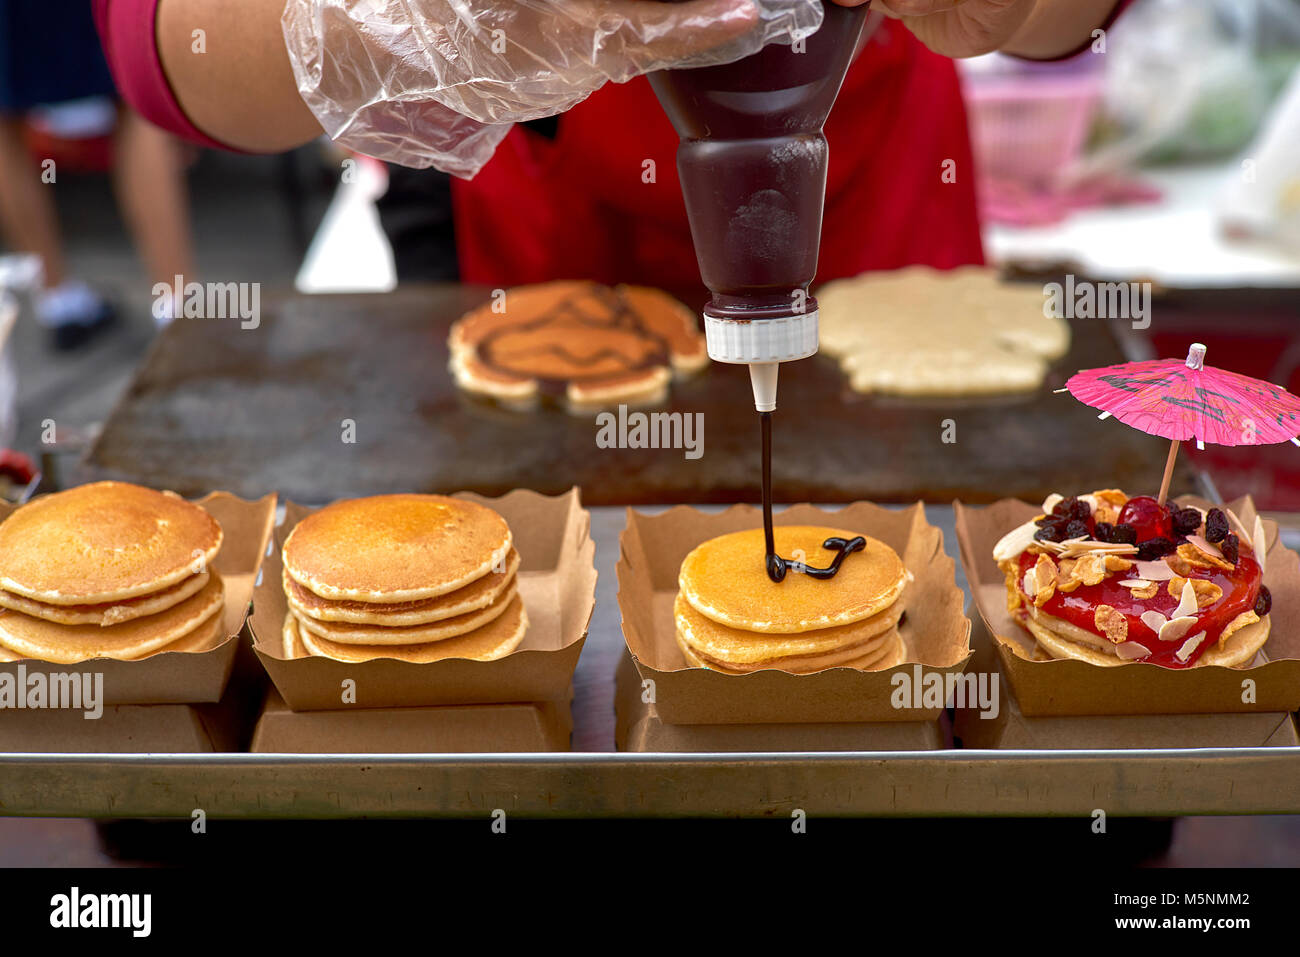 Thailand street food vendor preparing and decorating filled pancakes. Derived From American style  pancakes. 1 of - Stock Image